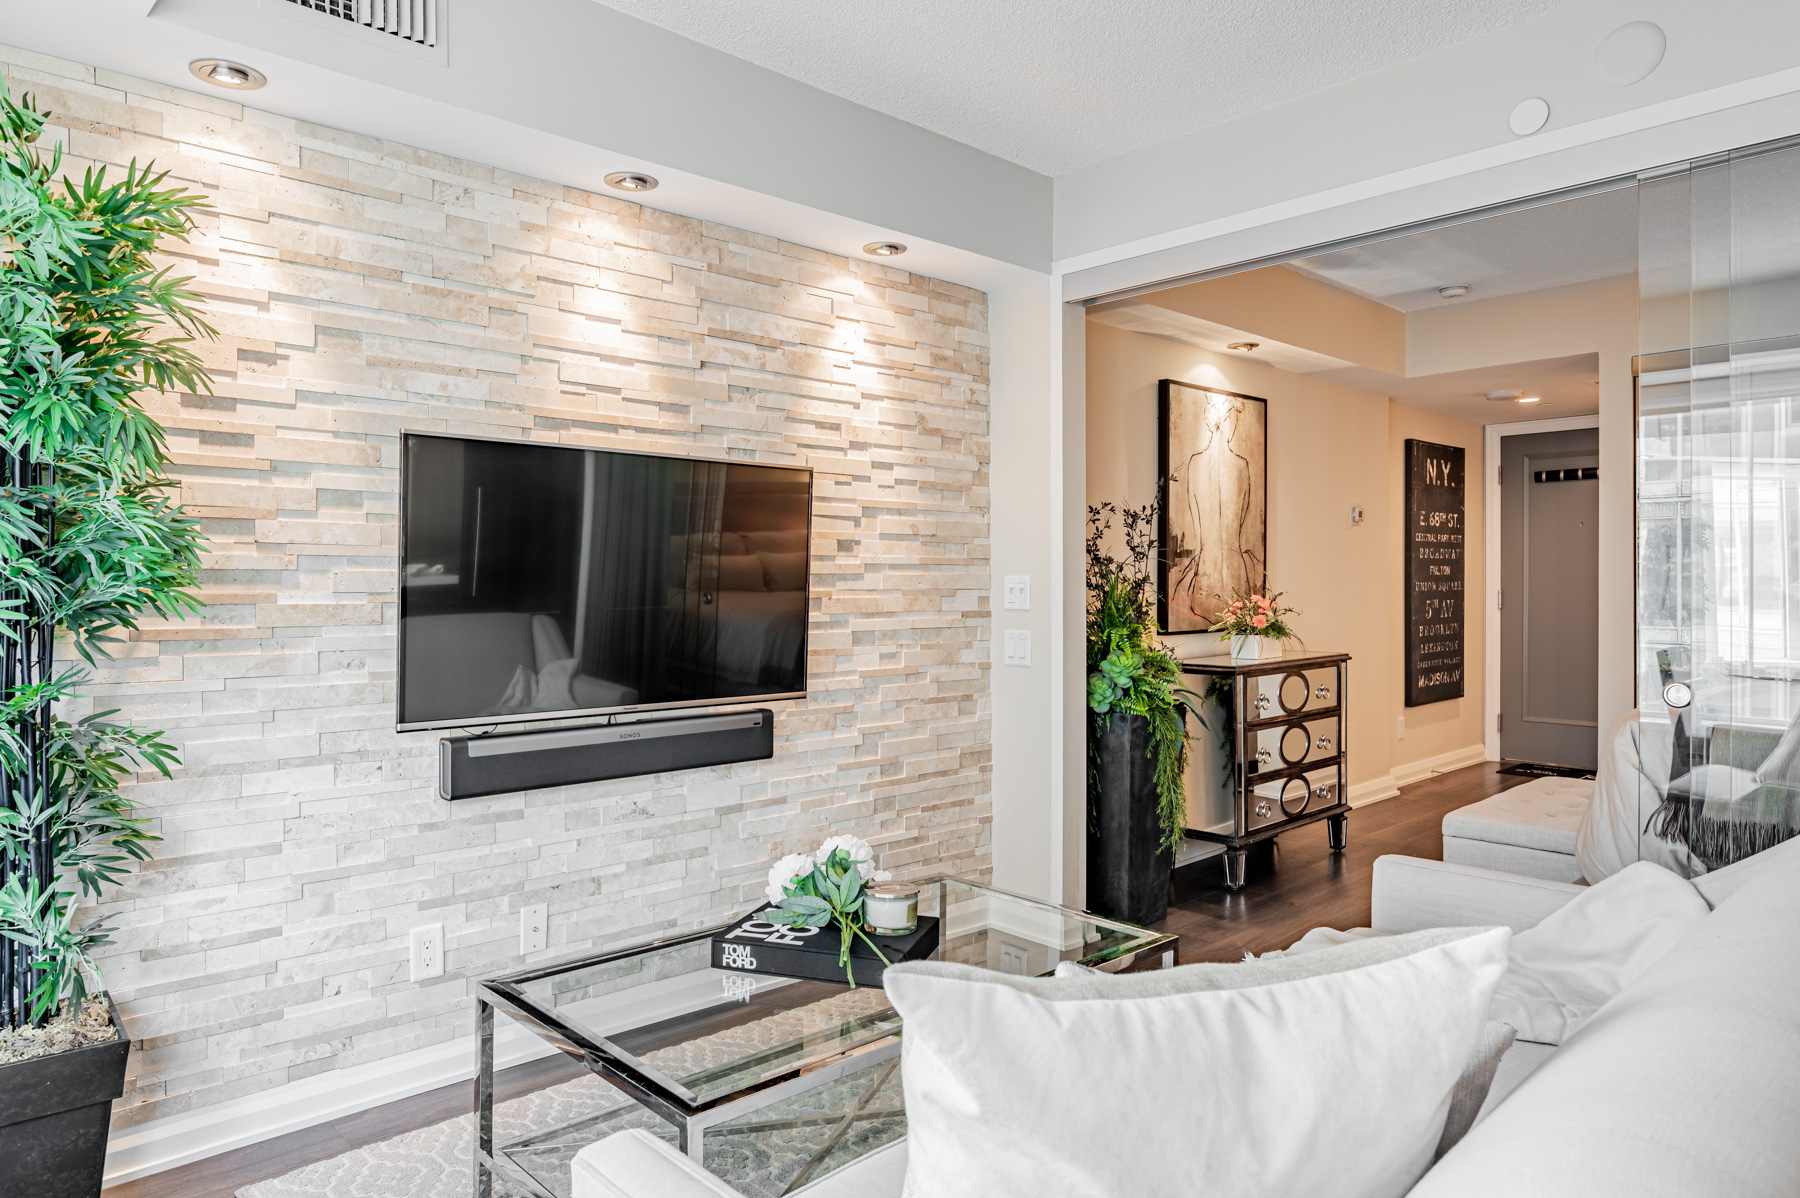 155 Yorkville Ave Unit 712 living room accent wall with mounted TV and Sonos speaker system.